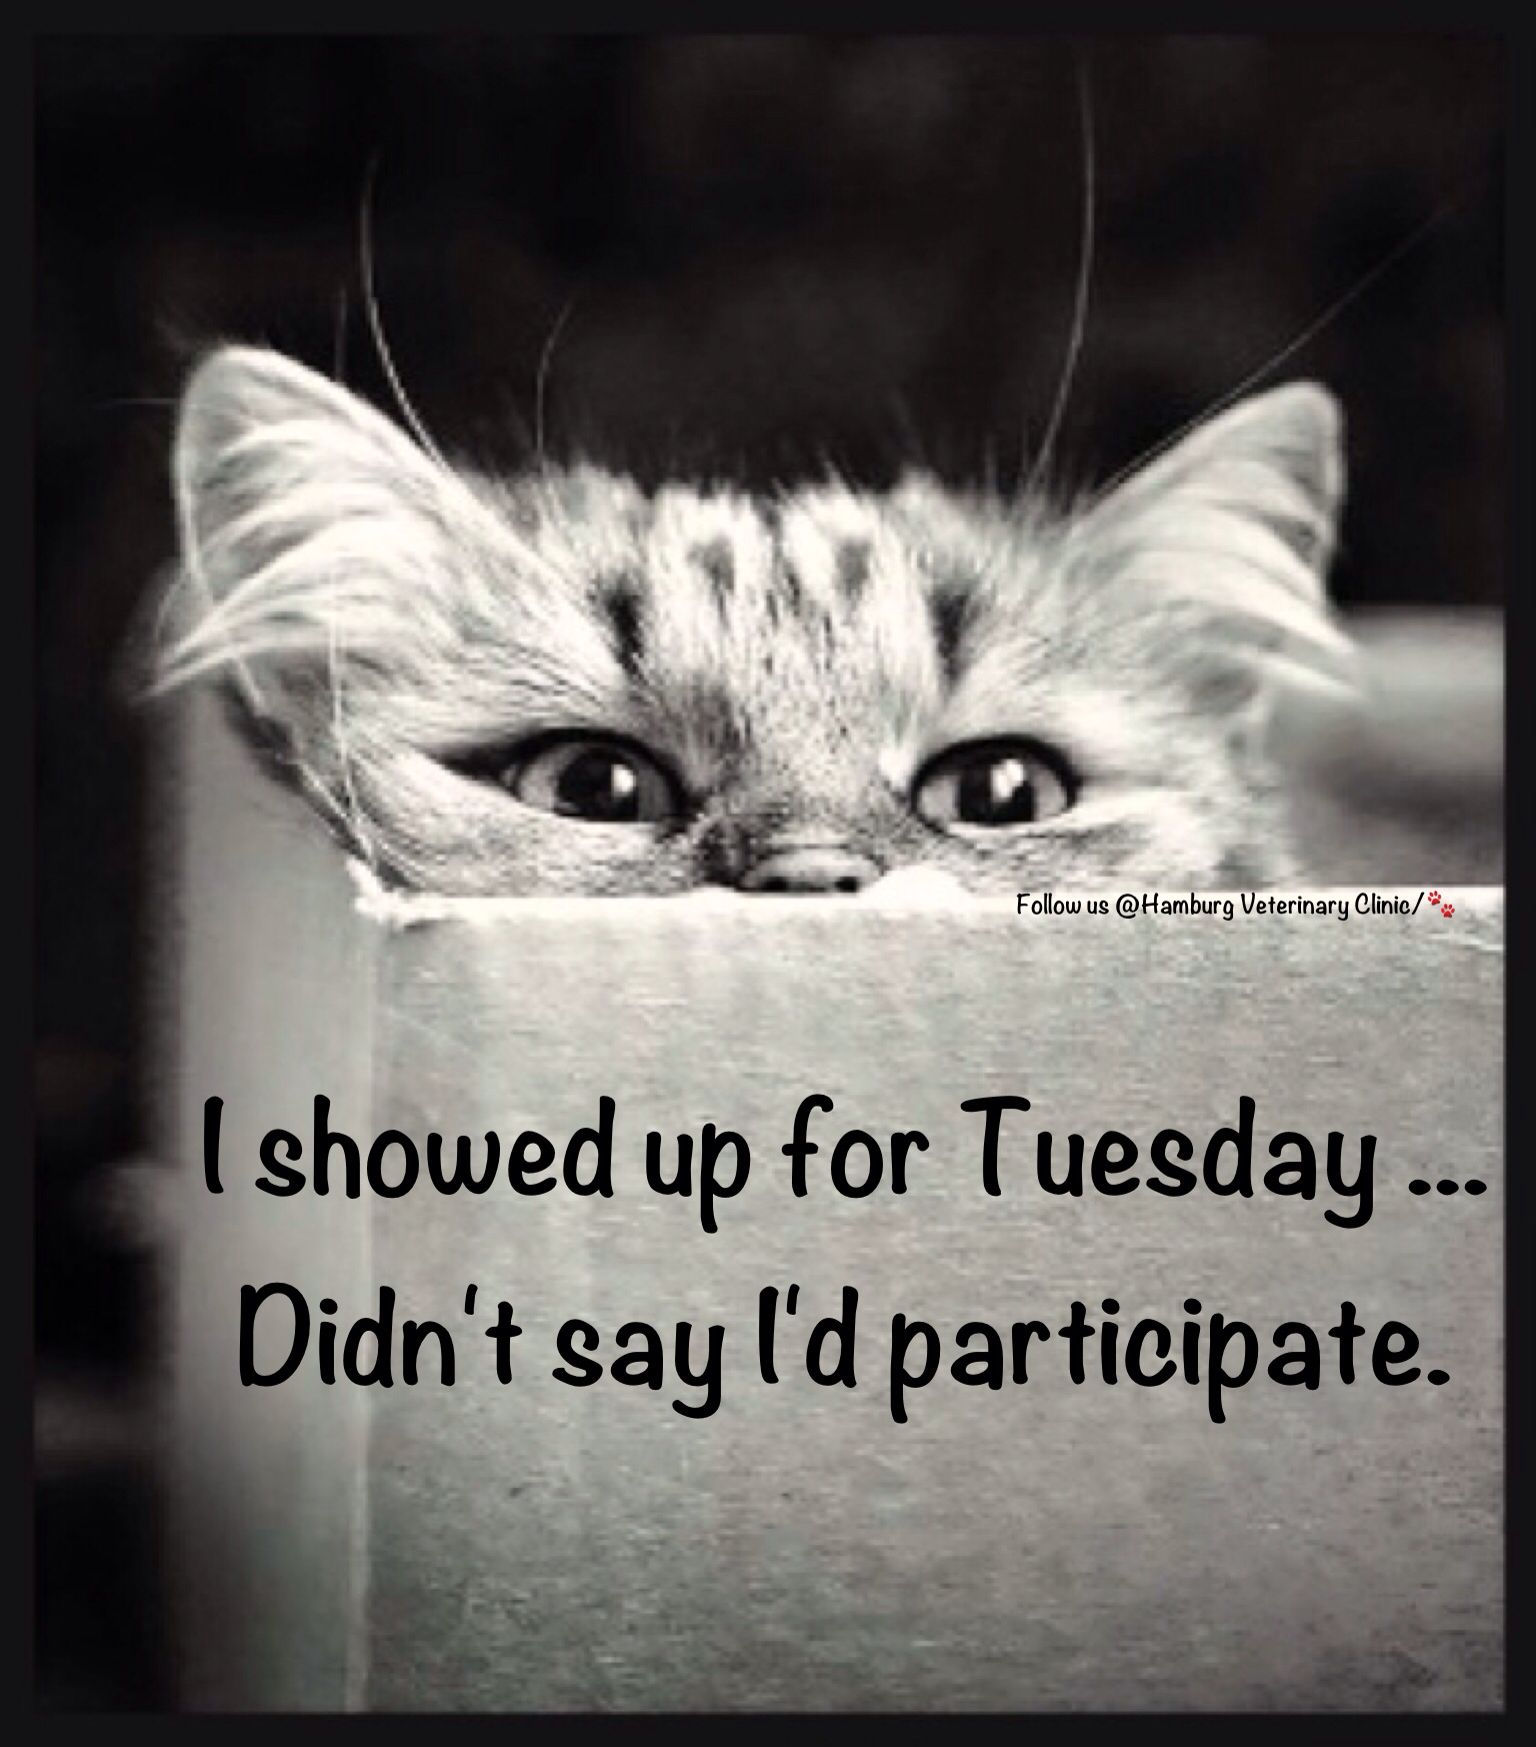 Tuesday Humor Tuesday Fuseday Cats Tuesday Humor Funny Cats